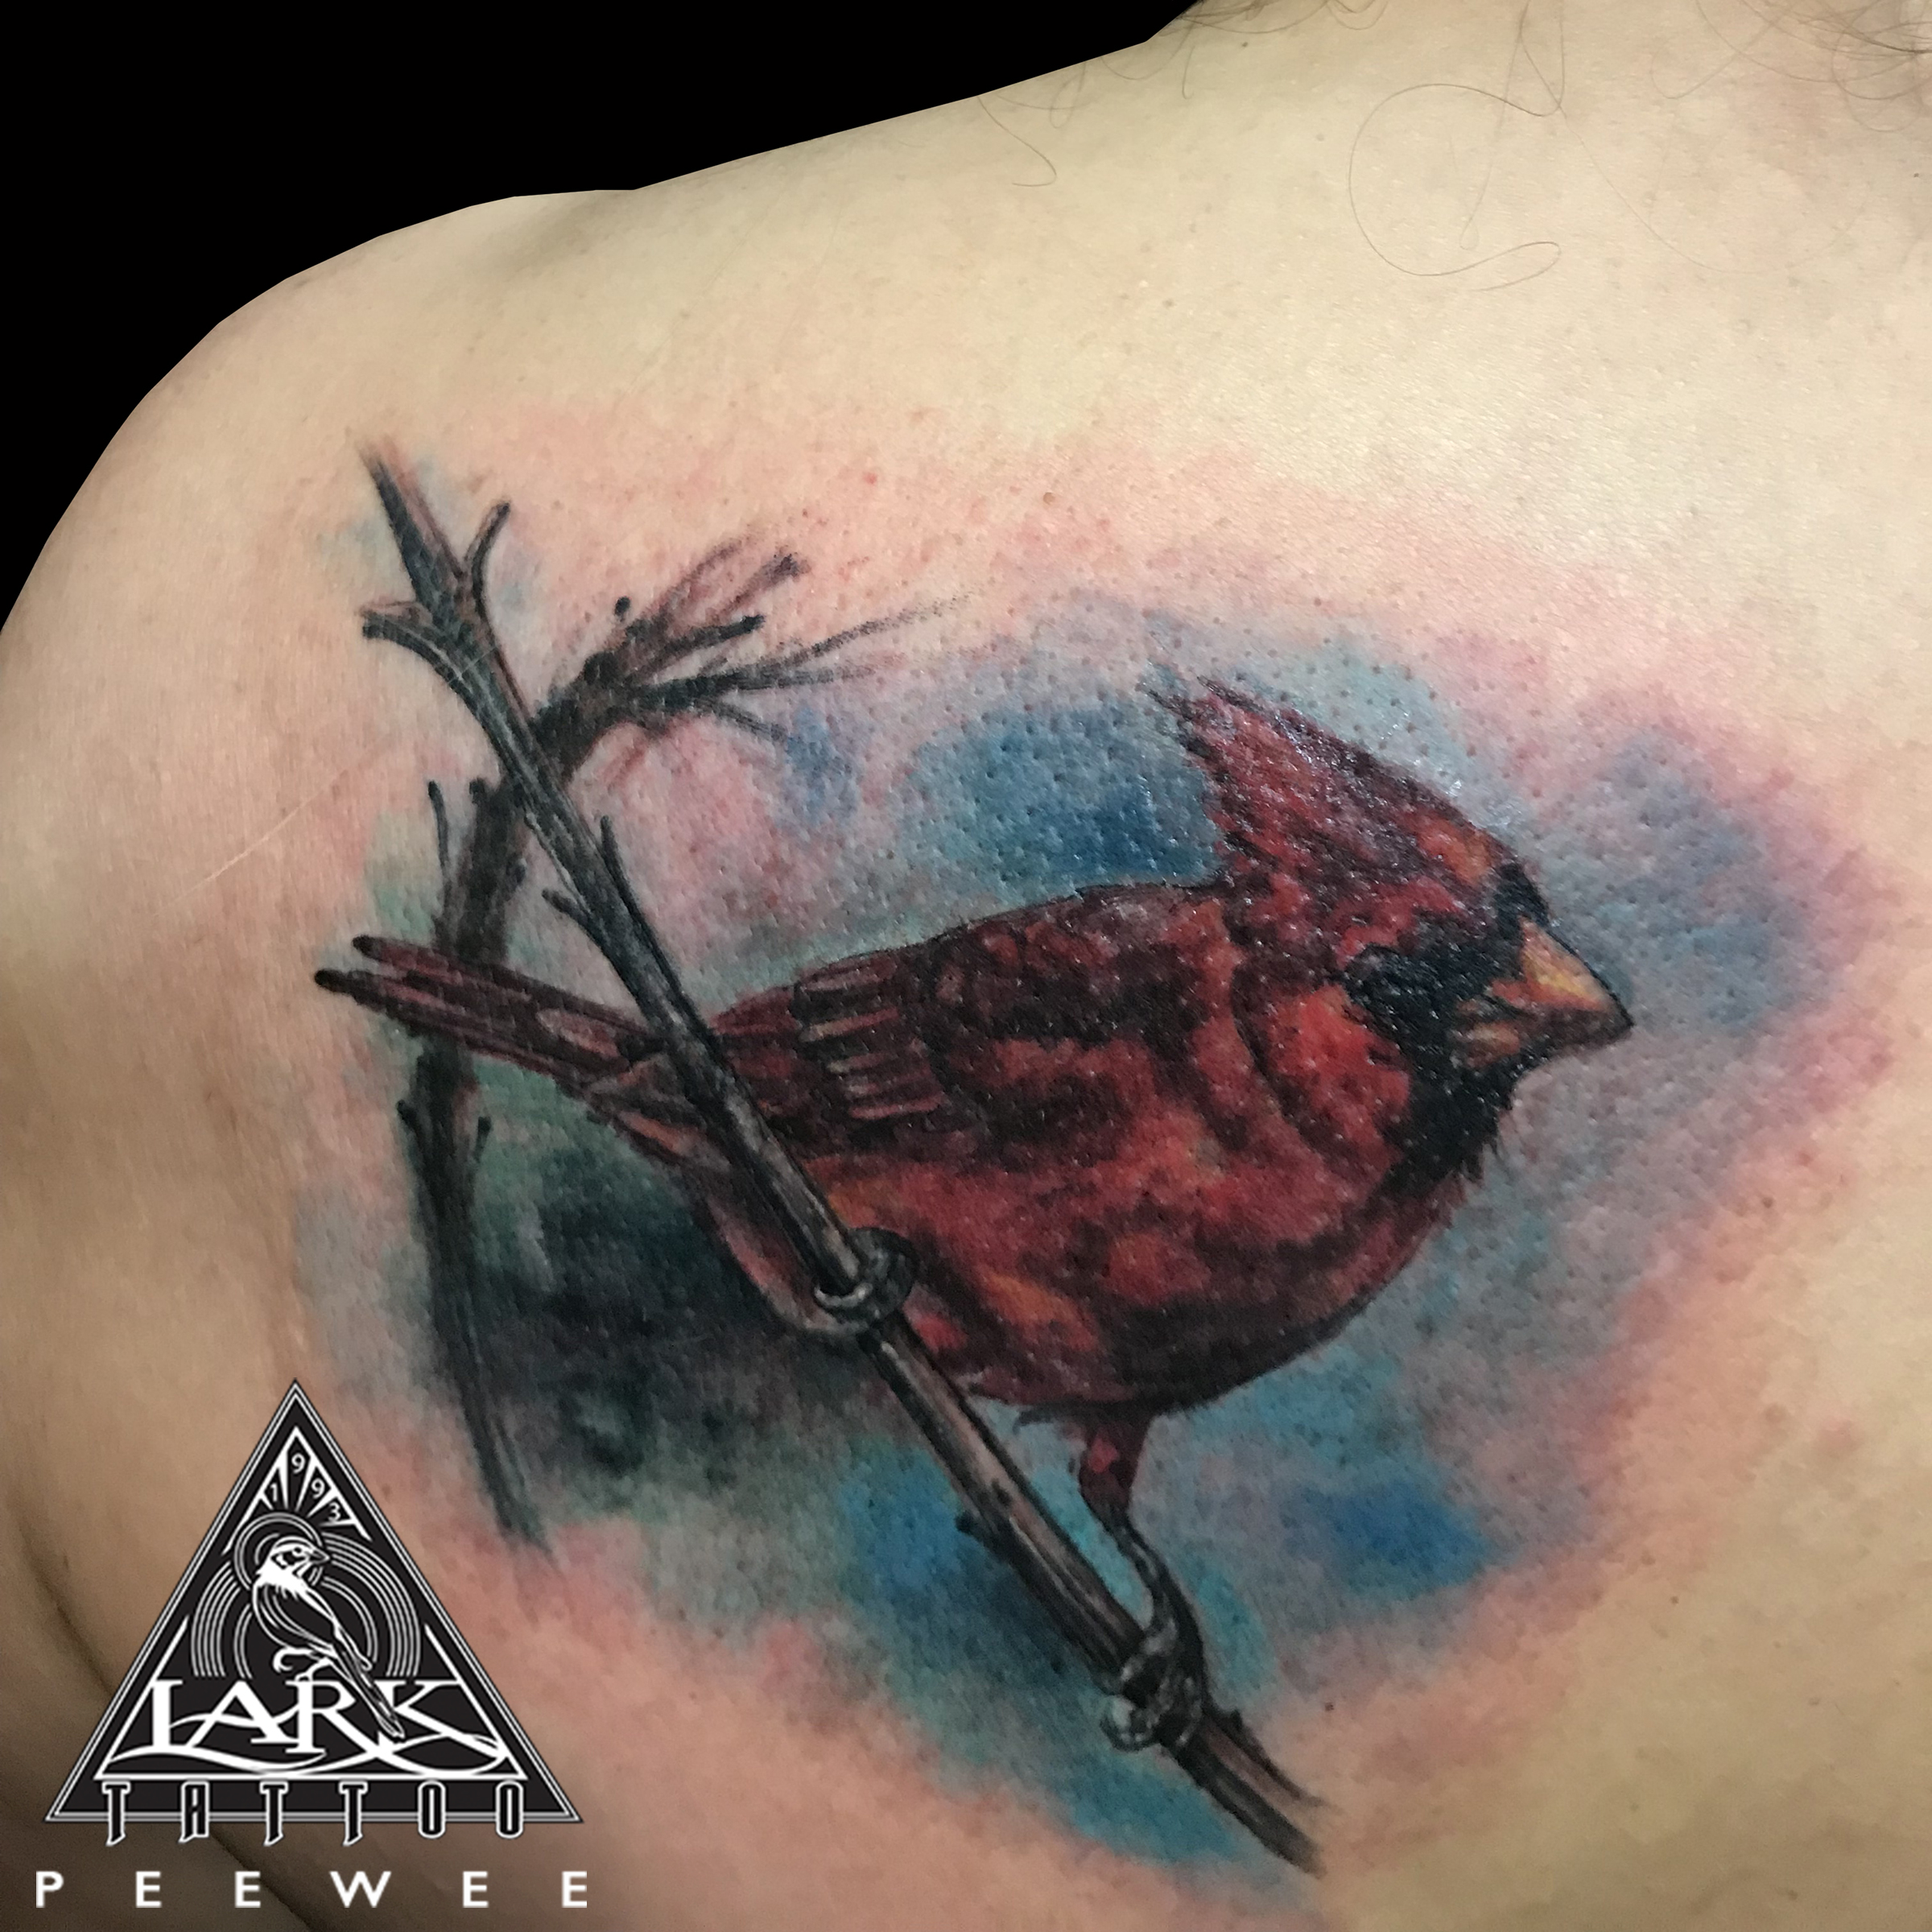 #colortattoo #bird #birdtattoo #cardinal #cardinaltattoo #animaltattoo #nature #naturetattoo #tattoo #tattoos #tat #tats #tatts #tatted #tattedup #tattoist #tattooed #inked #inkedup #ink #tattoooftheday #amazingink #bodyart #tattooig #tattoosofinstagram #instatats #larktattoo #larktattoos #larktattoowestbury #westbury #longisland #NY #NewYork #usa #art #peewee #peeweetattoo